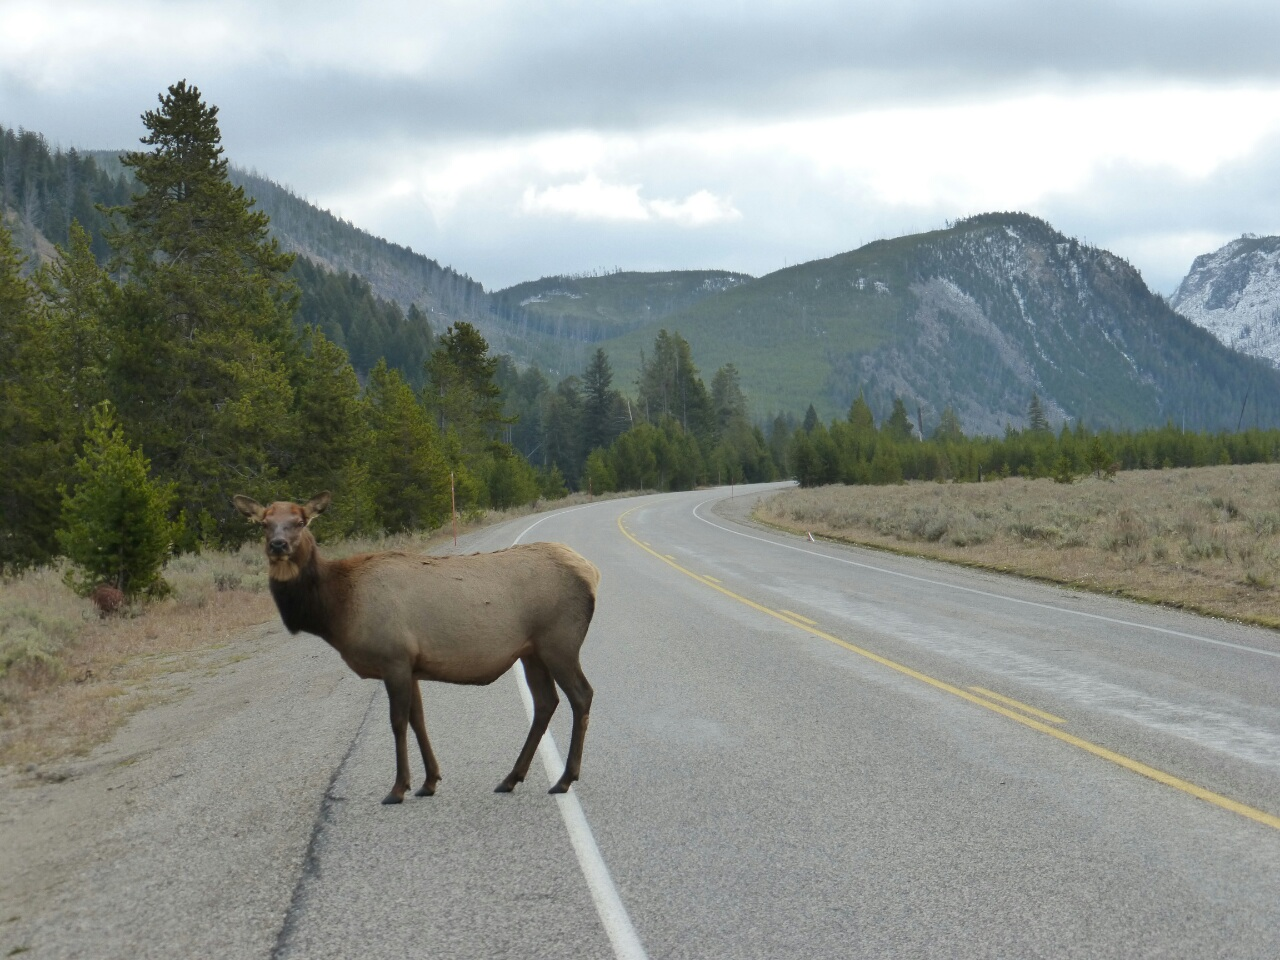 As I entered Wyoming, some of the wildlife came out to greet me on the road.